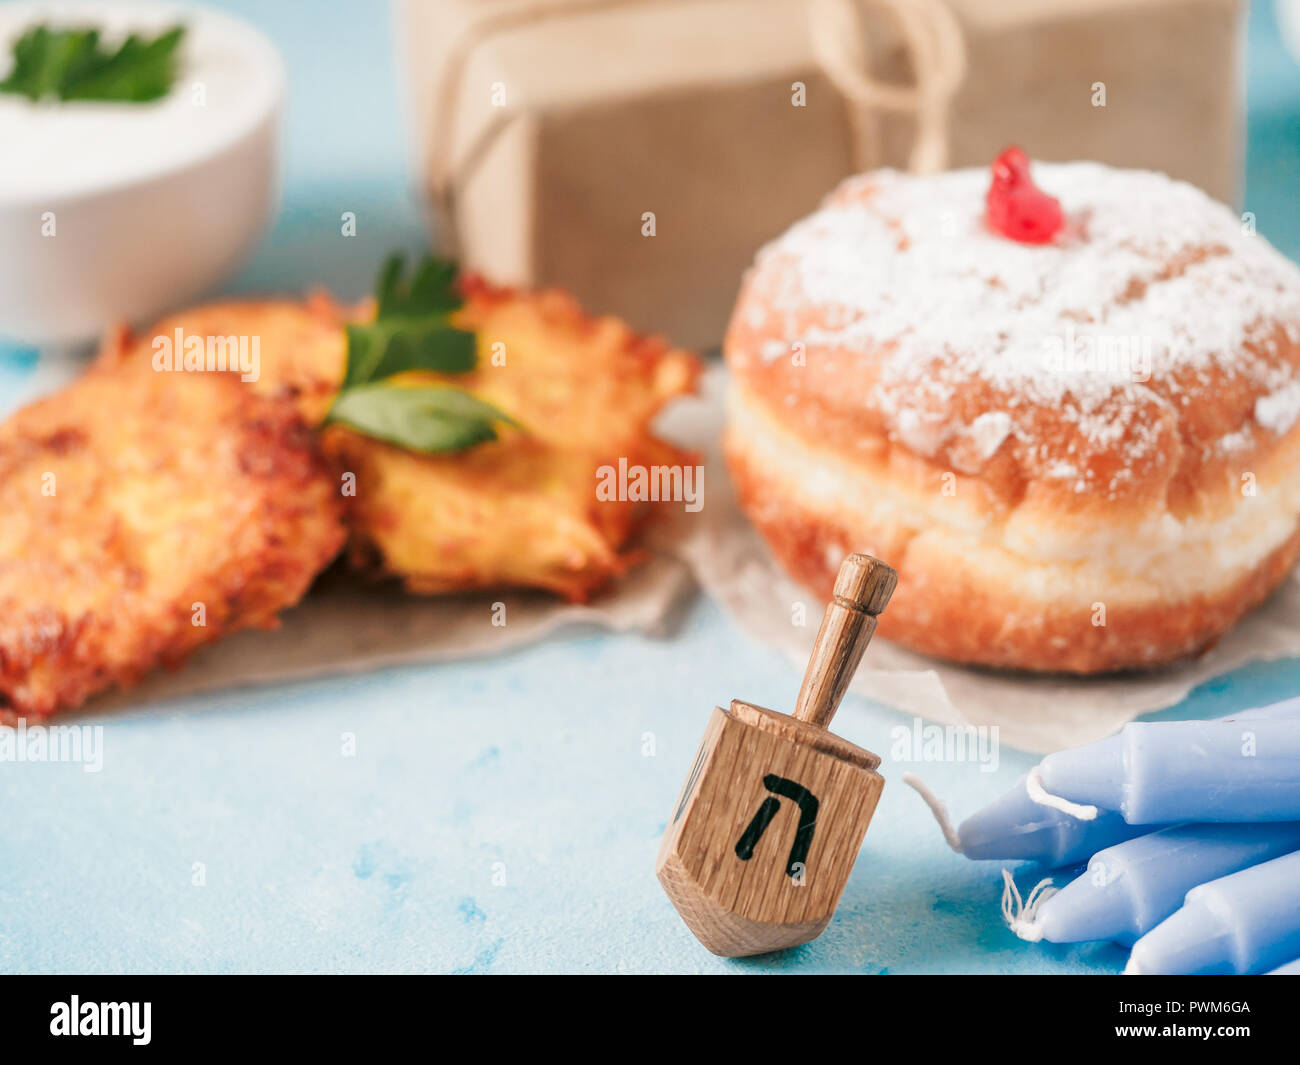 Jewish holiday Hanukkah concept and background. Hanukkah food doughnuts and potatoes pancakes latkes, giftbox, candle and traditional spinnig dreidl on blue background. Copy space for text. - Stock Image